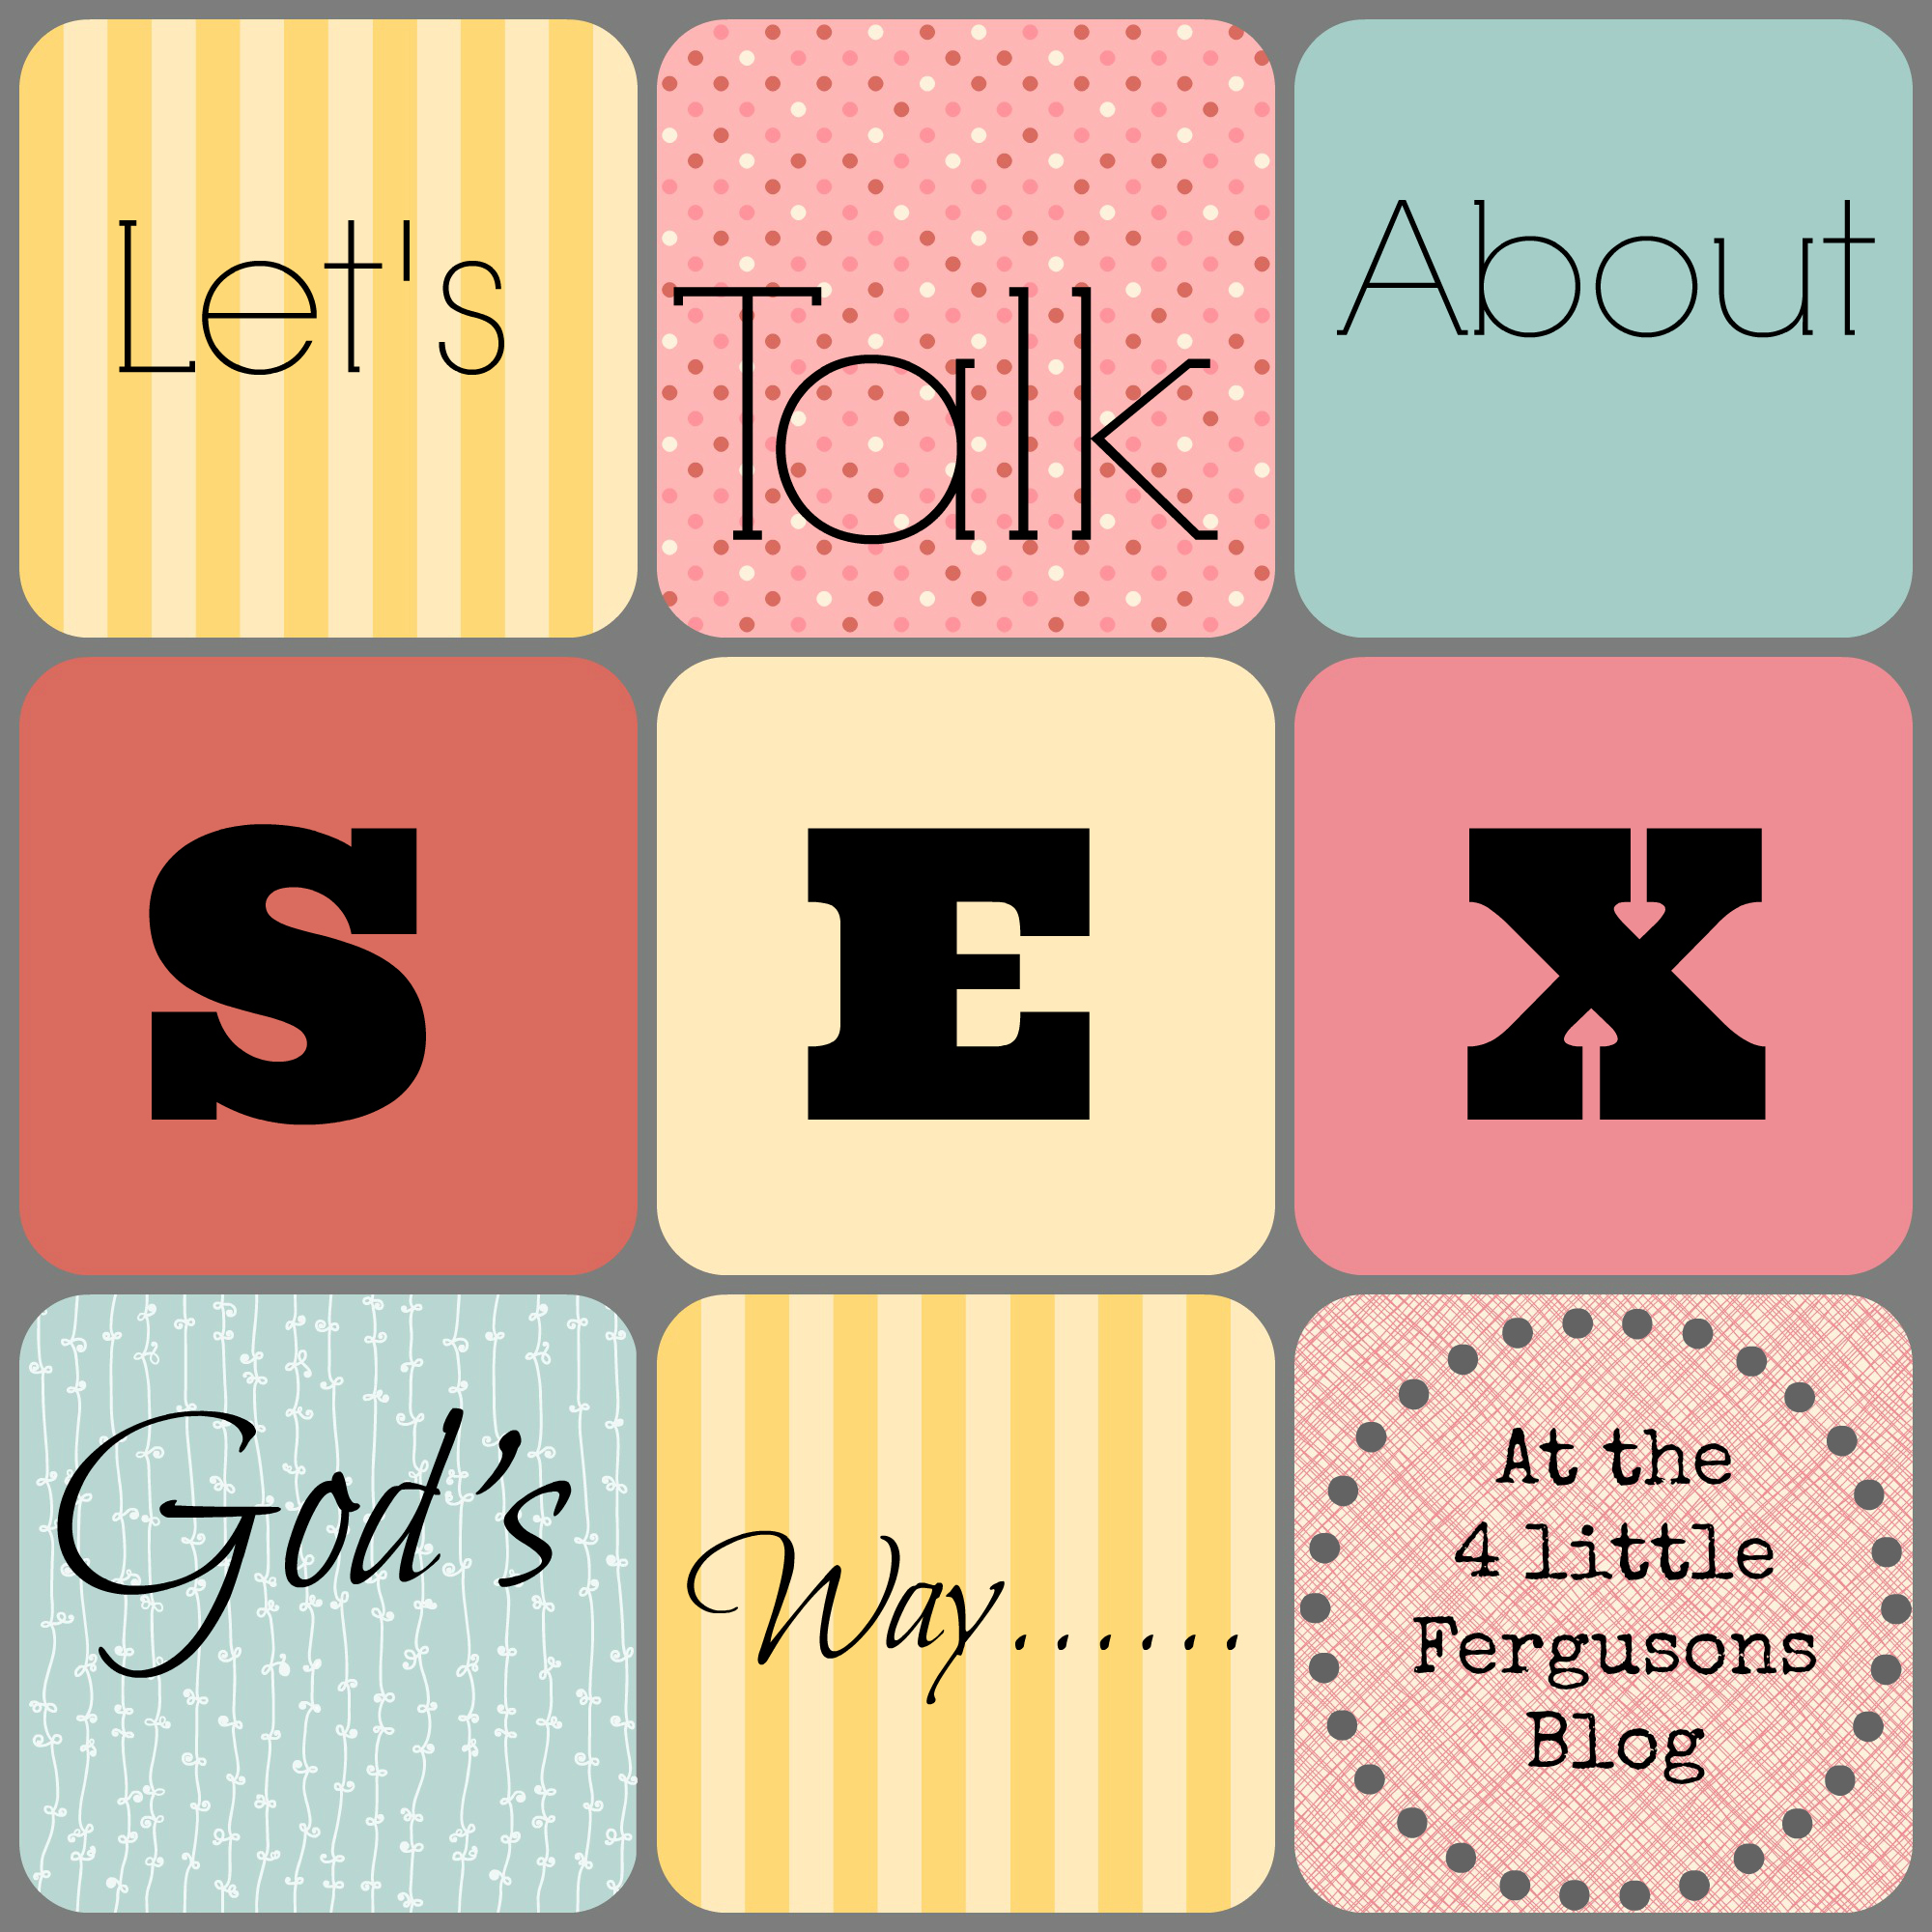 what does god says about dating What does the bible say about being in a relationship or marrying someone who is slightly older or younger i do know that dating or having a sexual relationship with an underage person can be considered pedophilia, but say what if both partners are of leg.